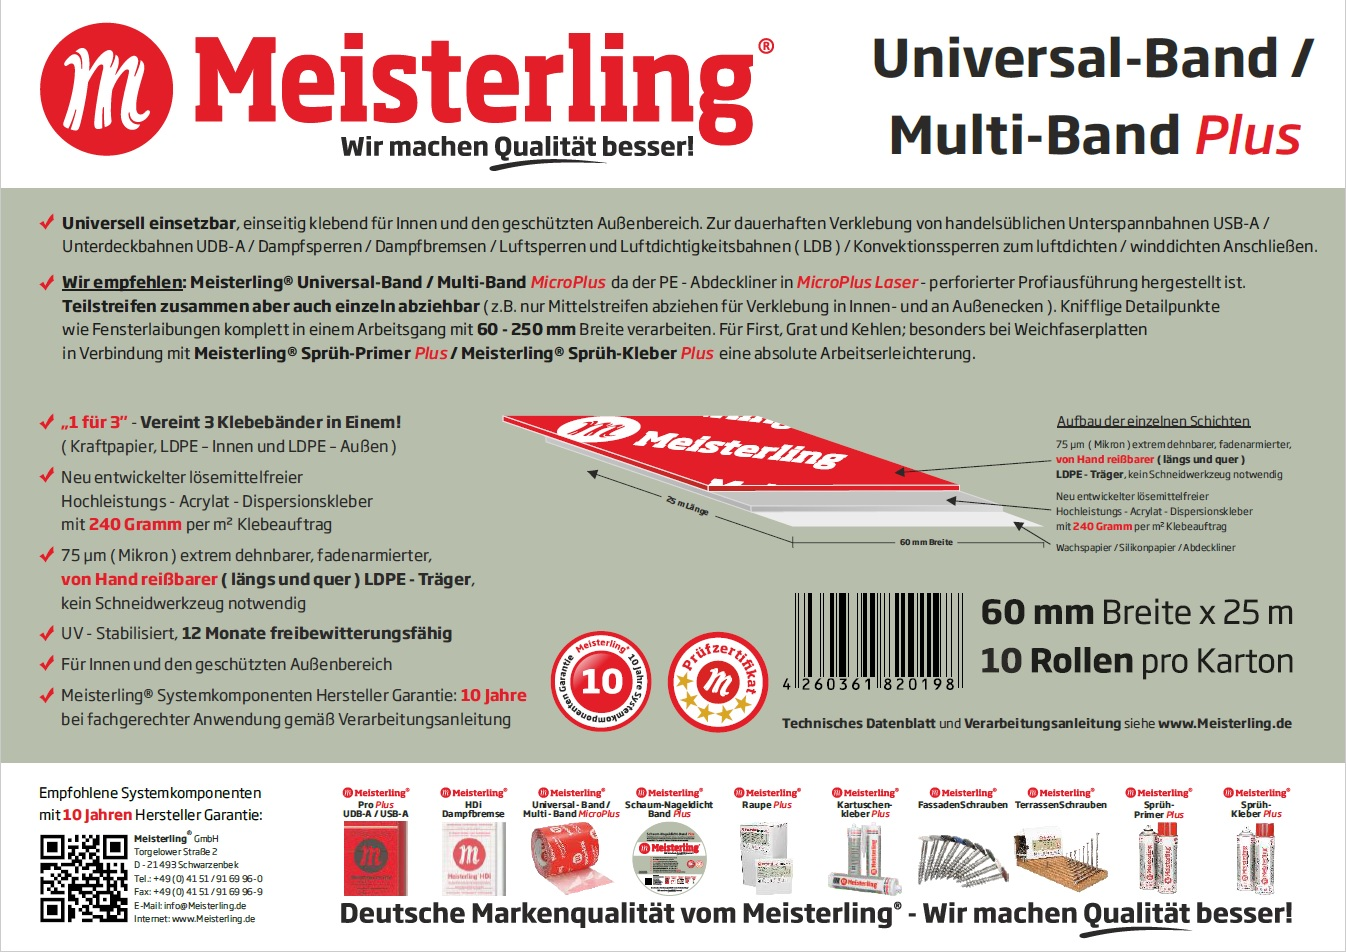 Technische Daten Meisterling® Universal-Band / Multi-Band PLUS